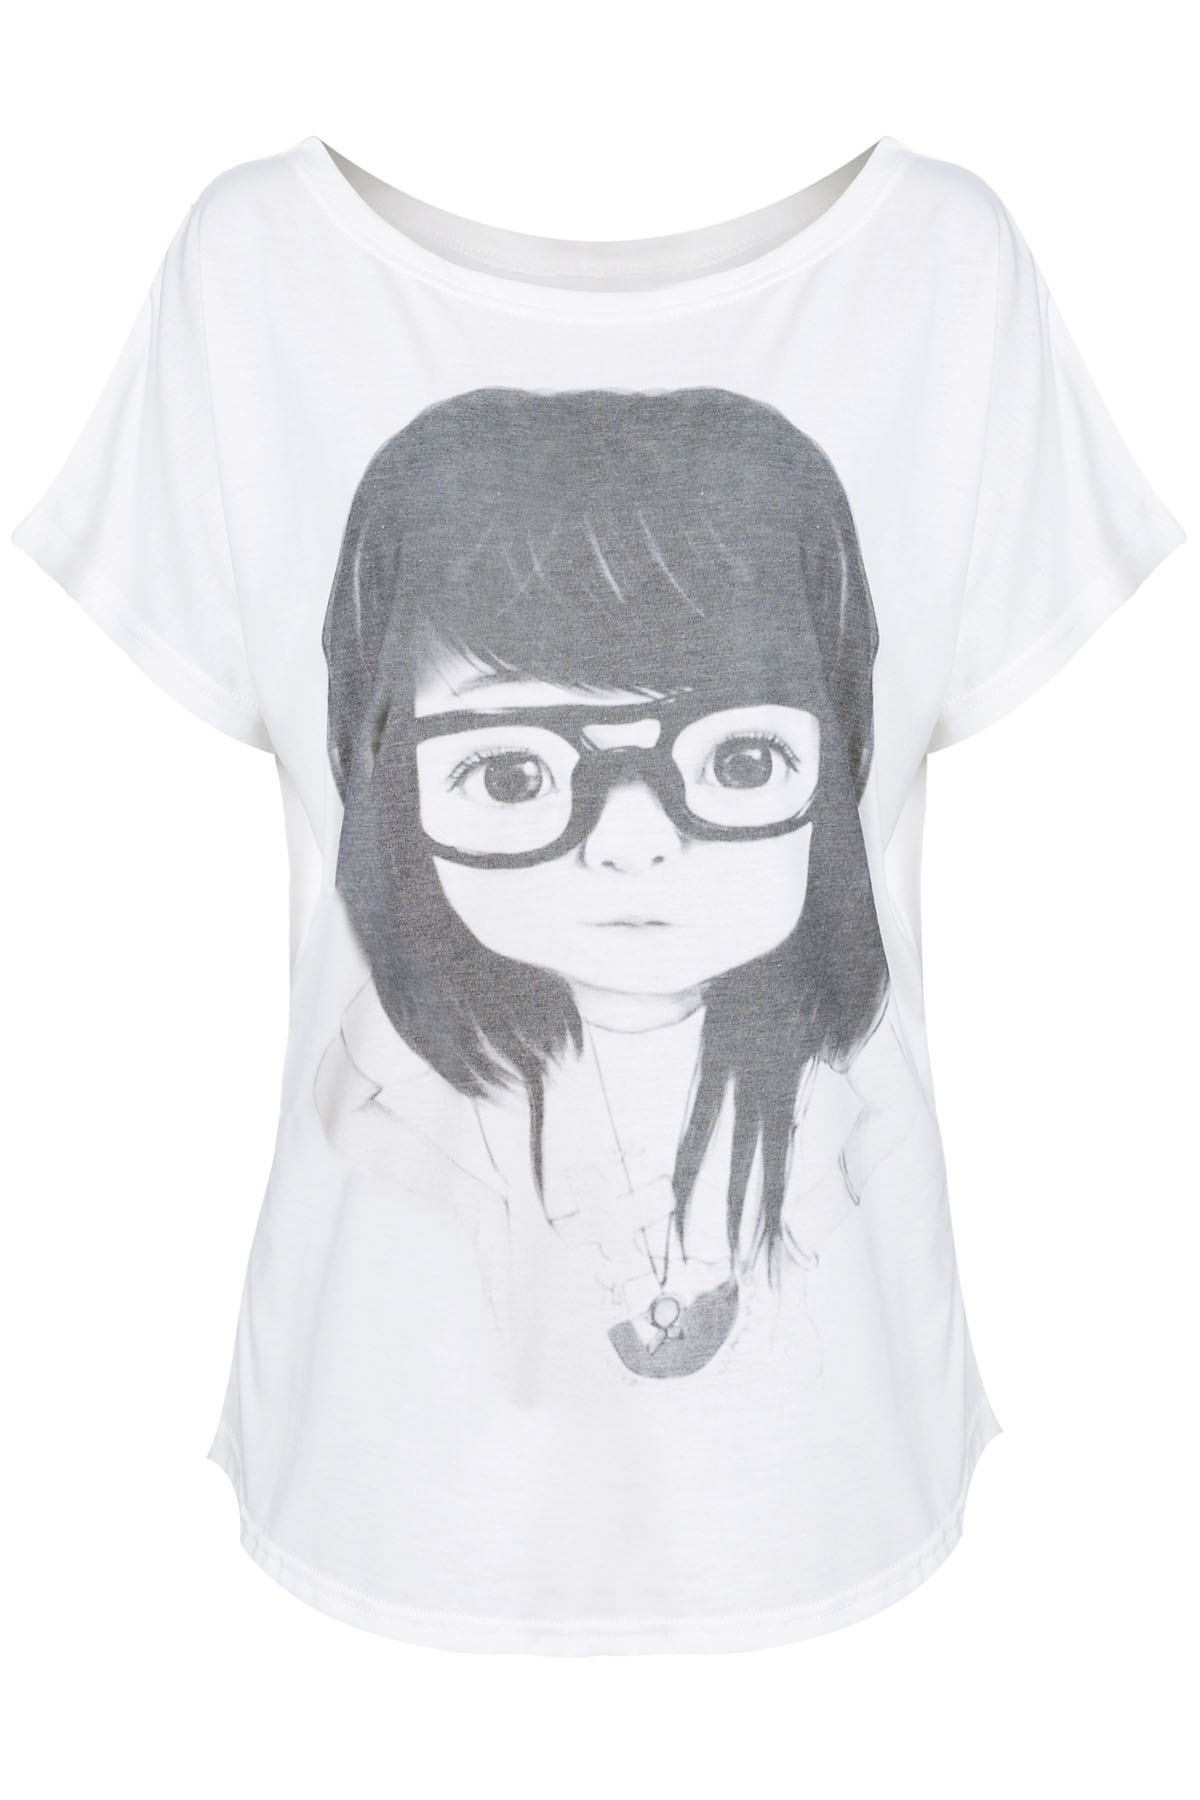 Women's Cute Girl In Glasses Pattern Loose Fit Short Sleeves T-shirt